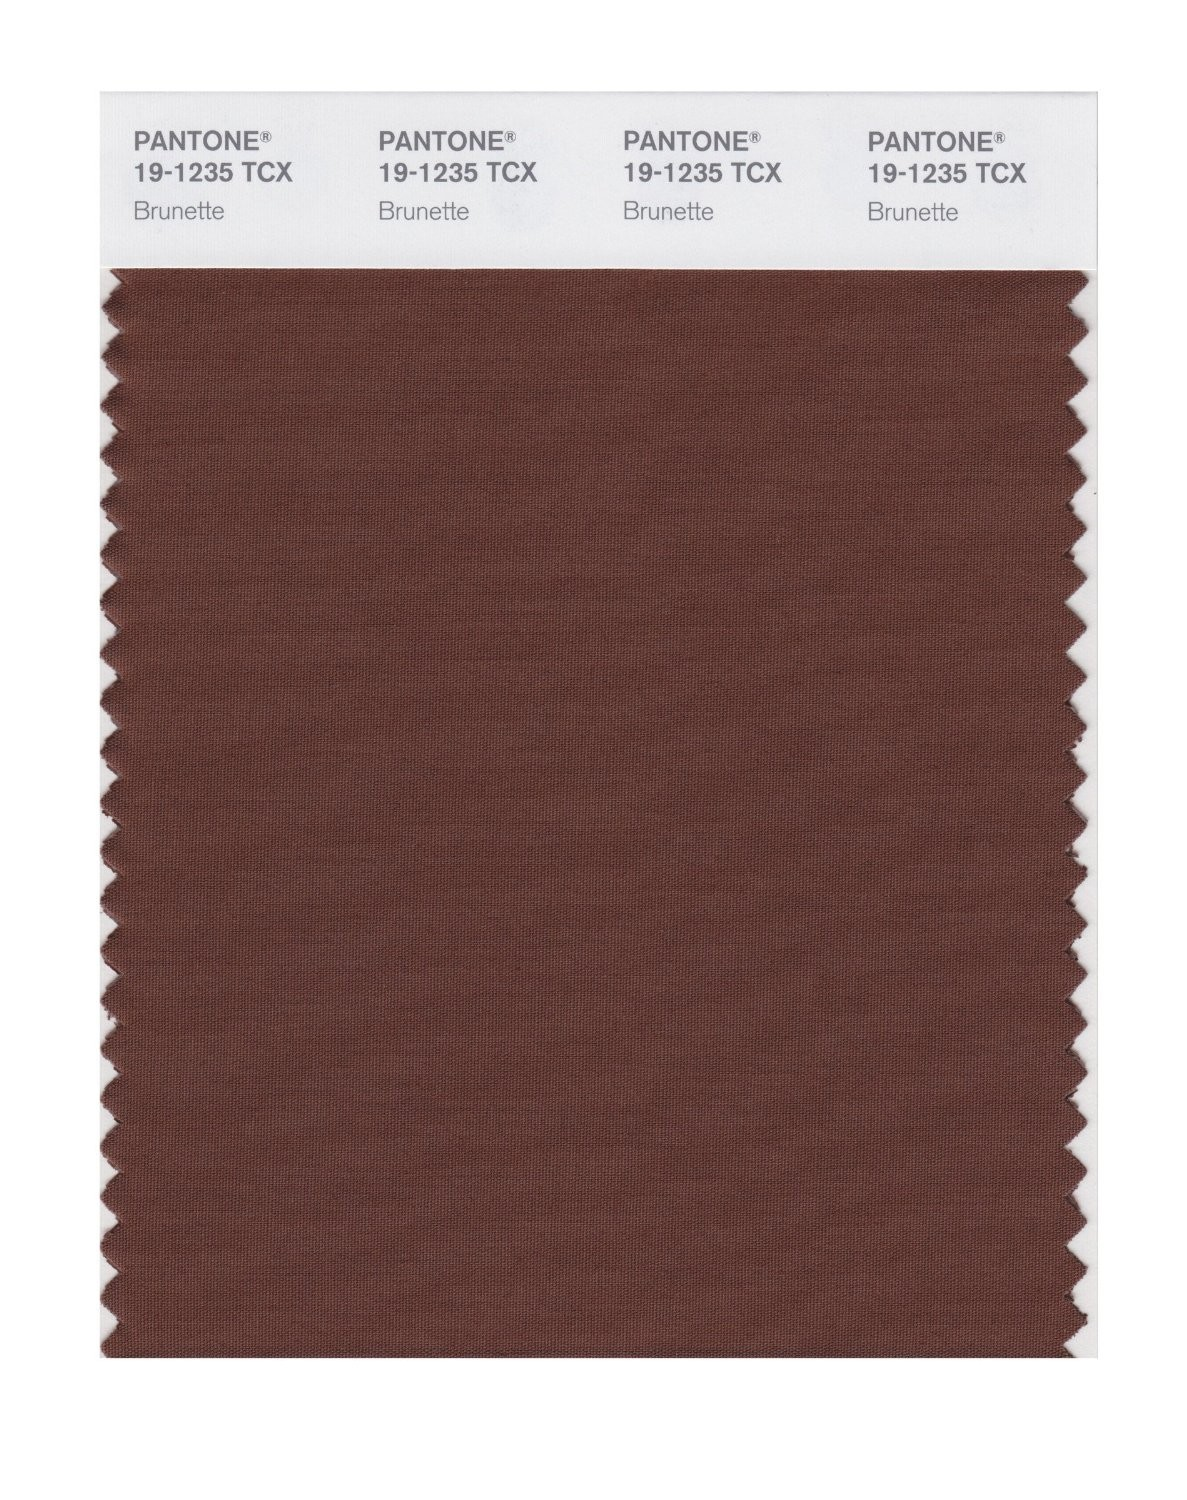 Pantone 19-1235 TCX Swatch Card Brunette